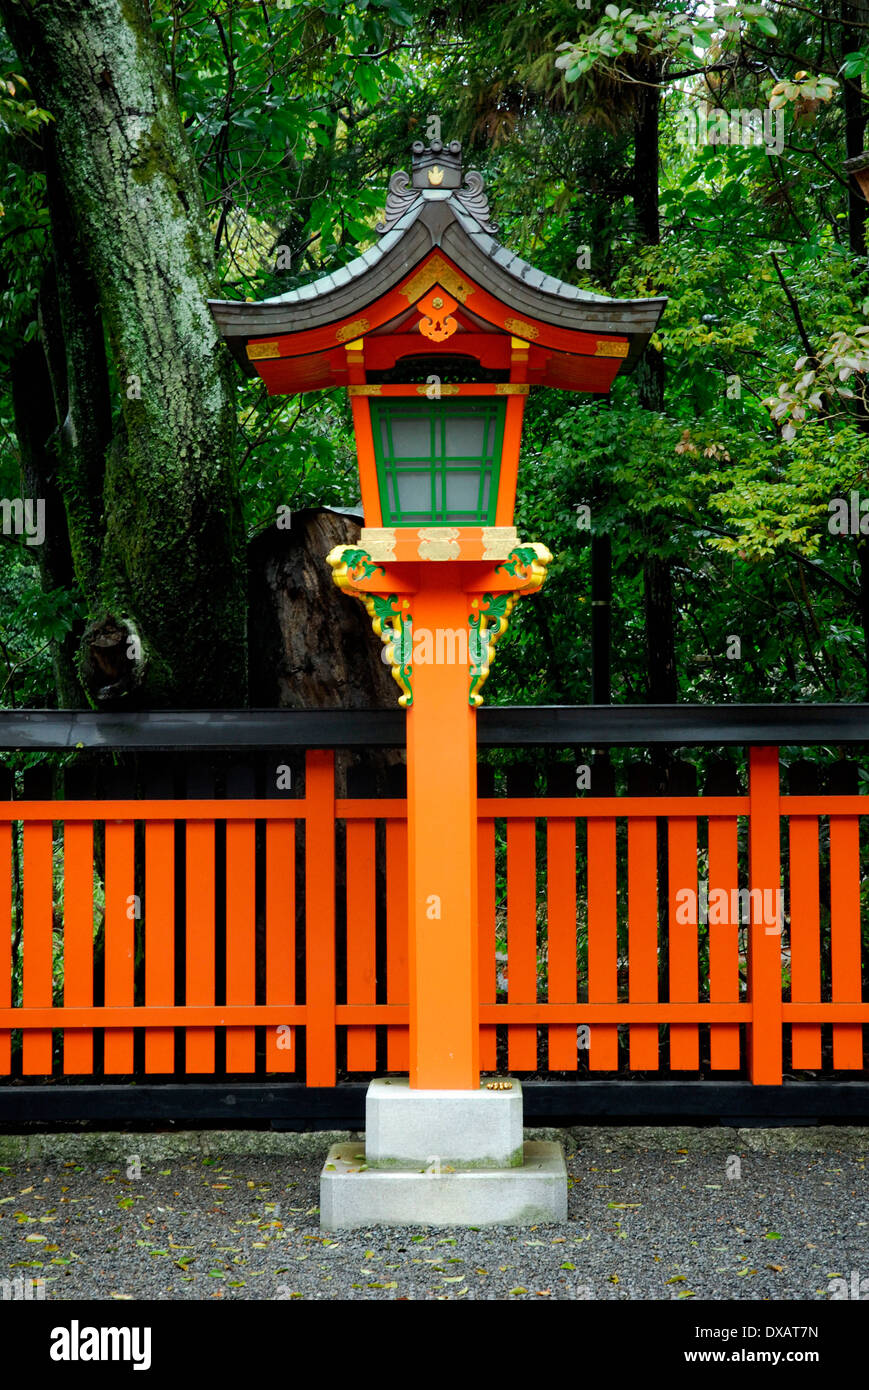 Fushimi Inari Shrine, Kyoto - Stock Image